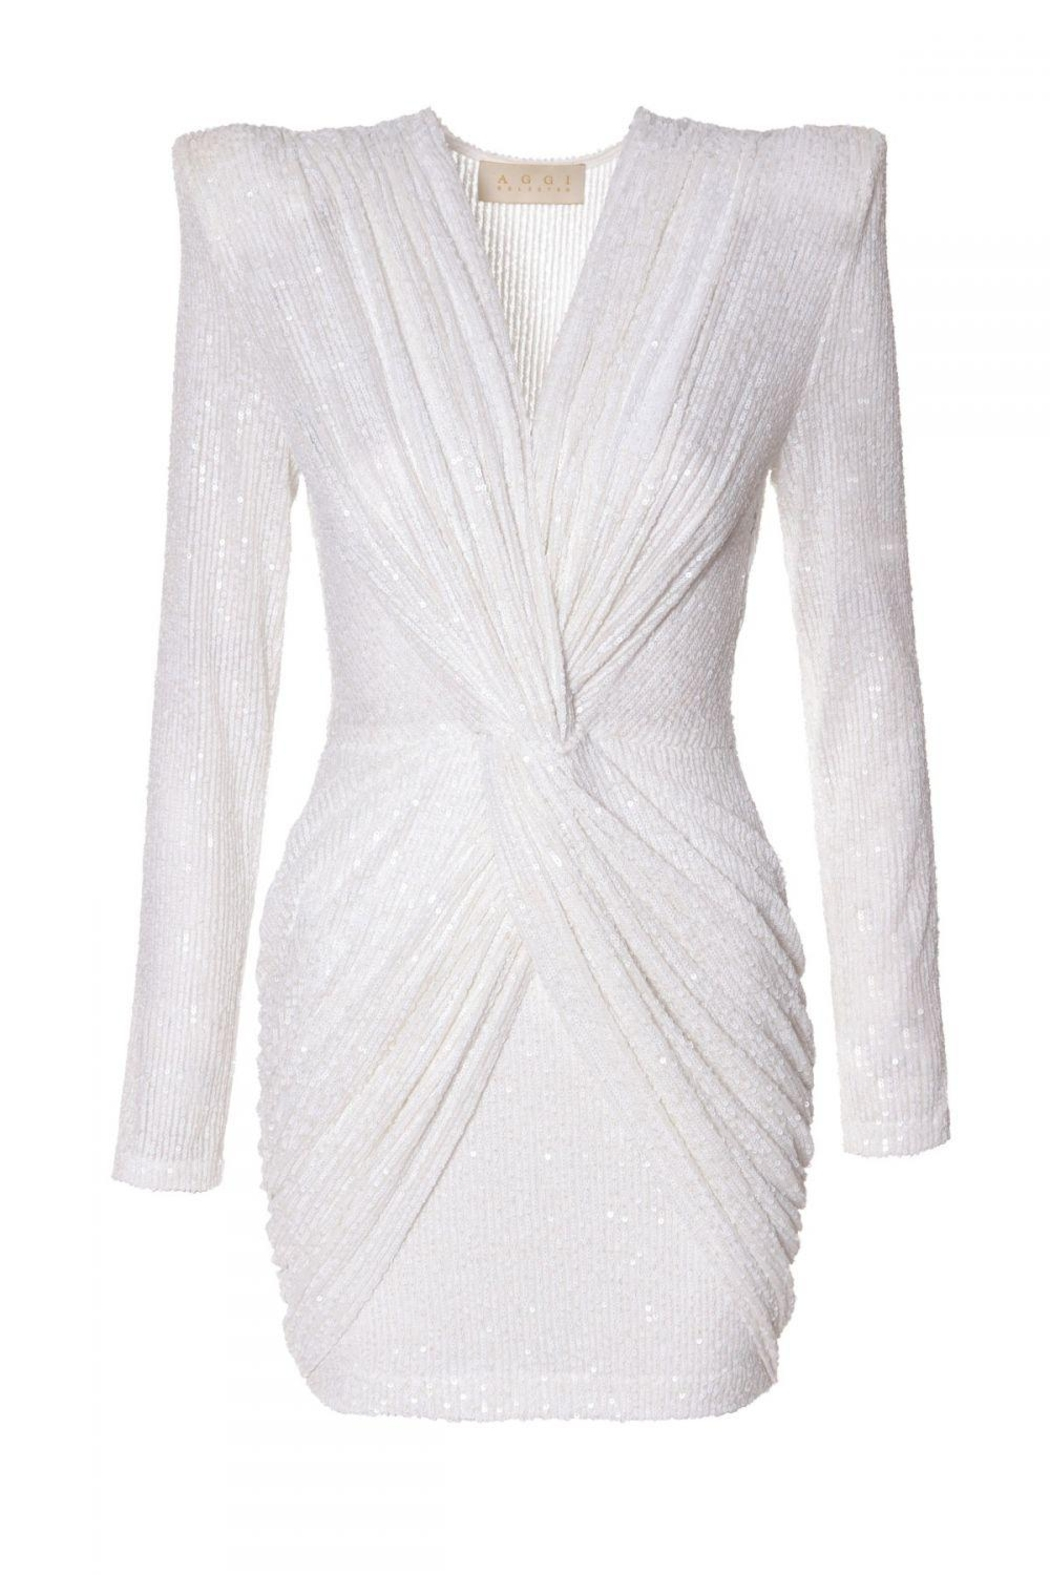 AGGI Dress Jennifer Super White - Front Full Image